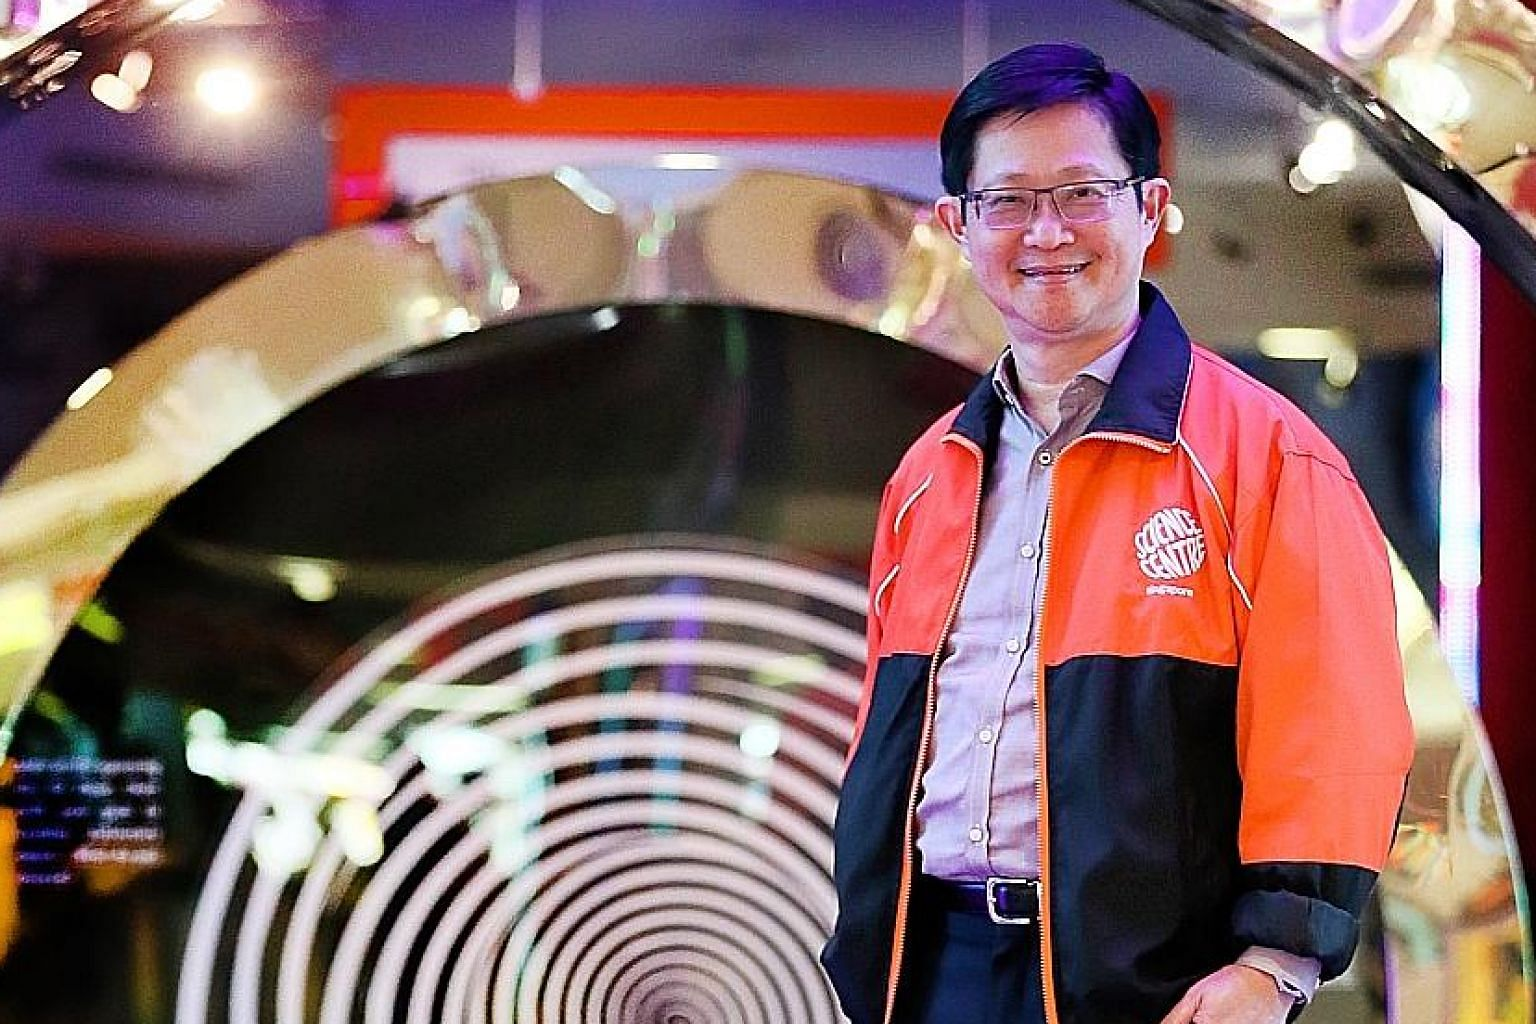 Dr Lim Tit Meng took over the helm of Science Centre Singapore in 2010.